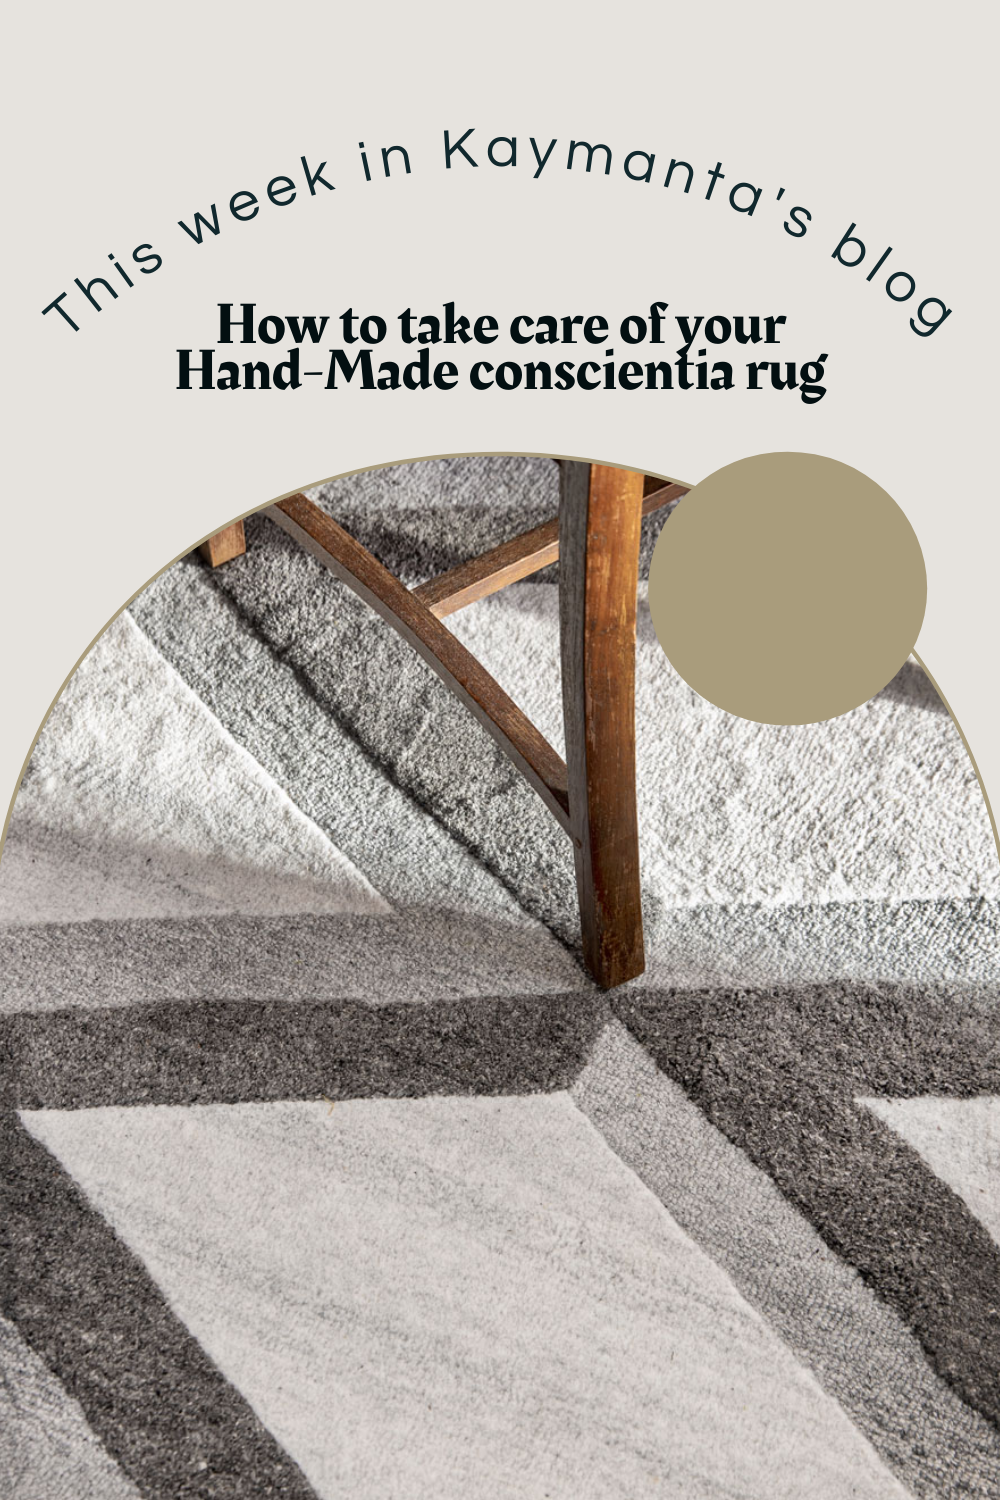 How to take care of your hand-made Conscientia rug